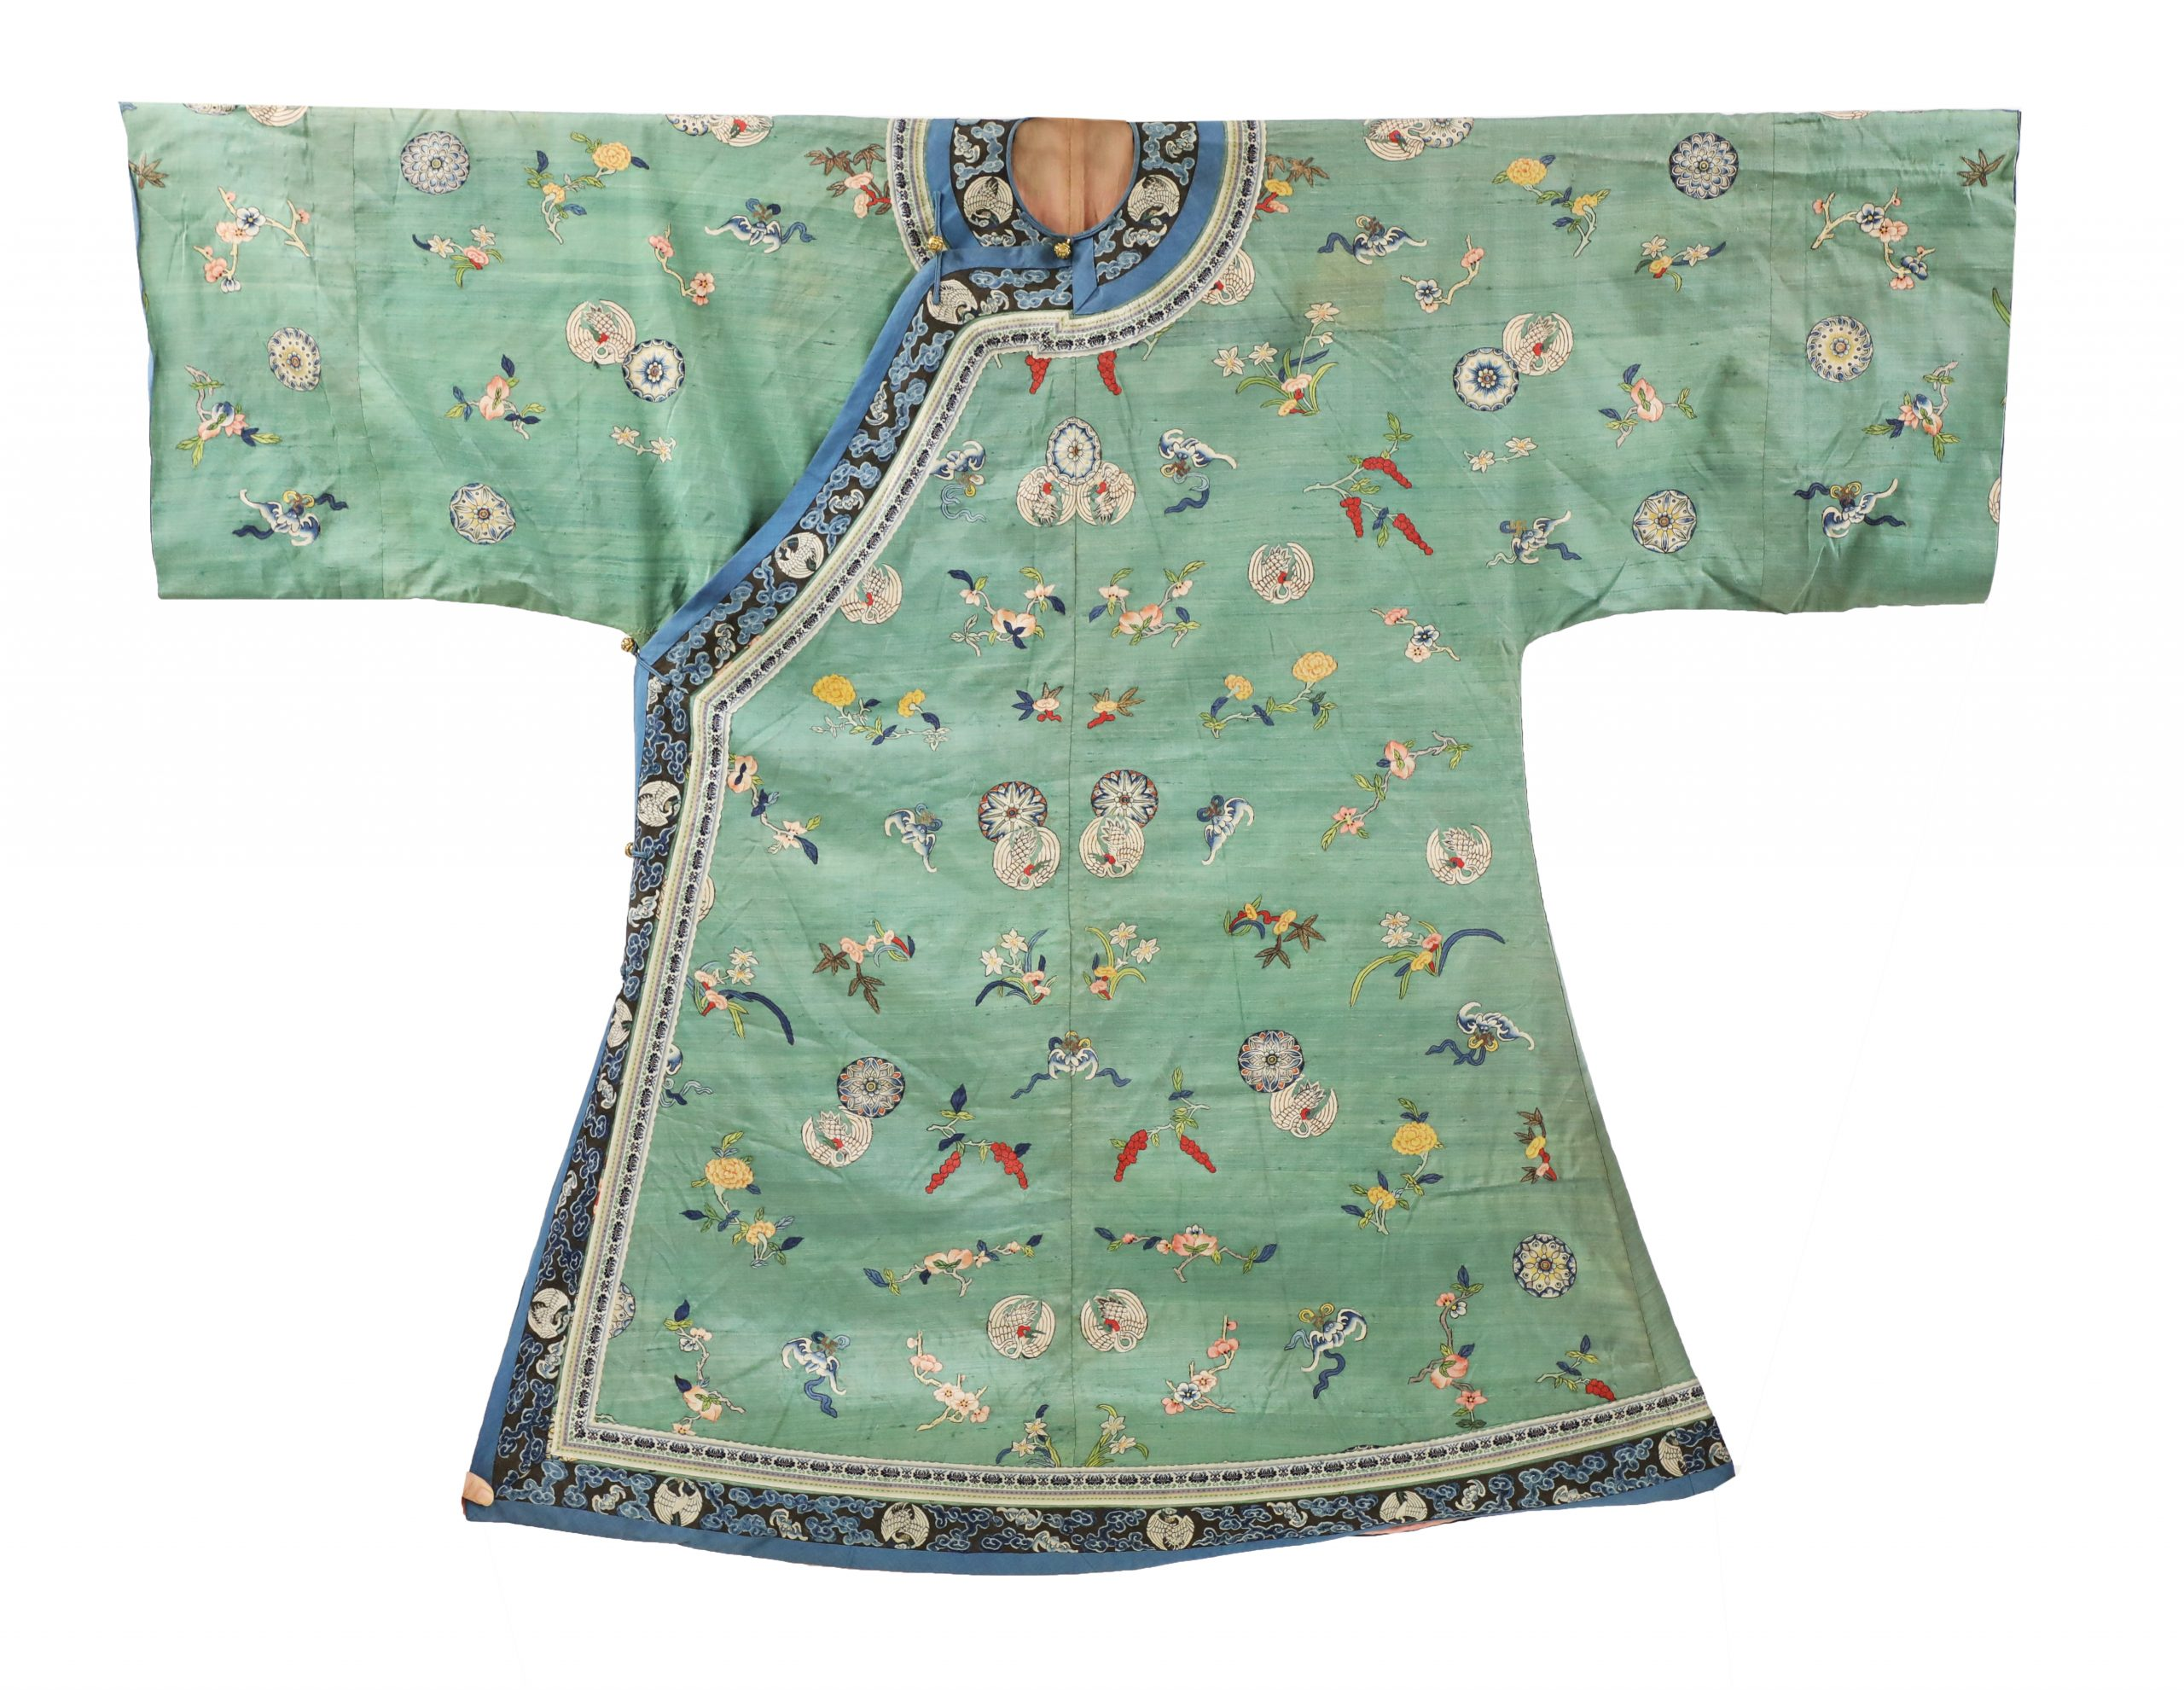 Decorated with crane roundels, sprigs of flowers, lingzhi, bats and peaches, against a green ground, a black border continuing around the neckline to the hem and to the sleeves, decorated with crane roundels among clouds, 155cm across the arms 121.5cm long approximately 清 缂丝绿地折枝花卉纹氅衣